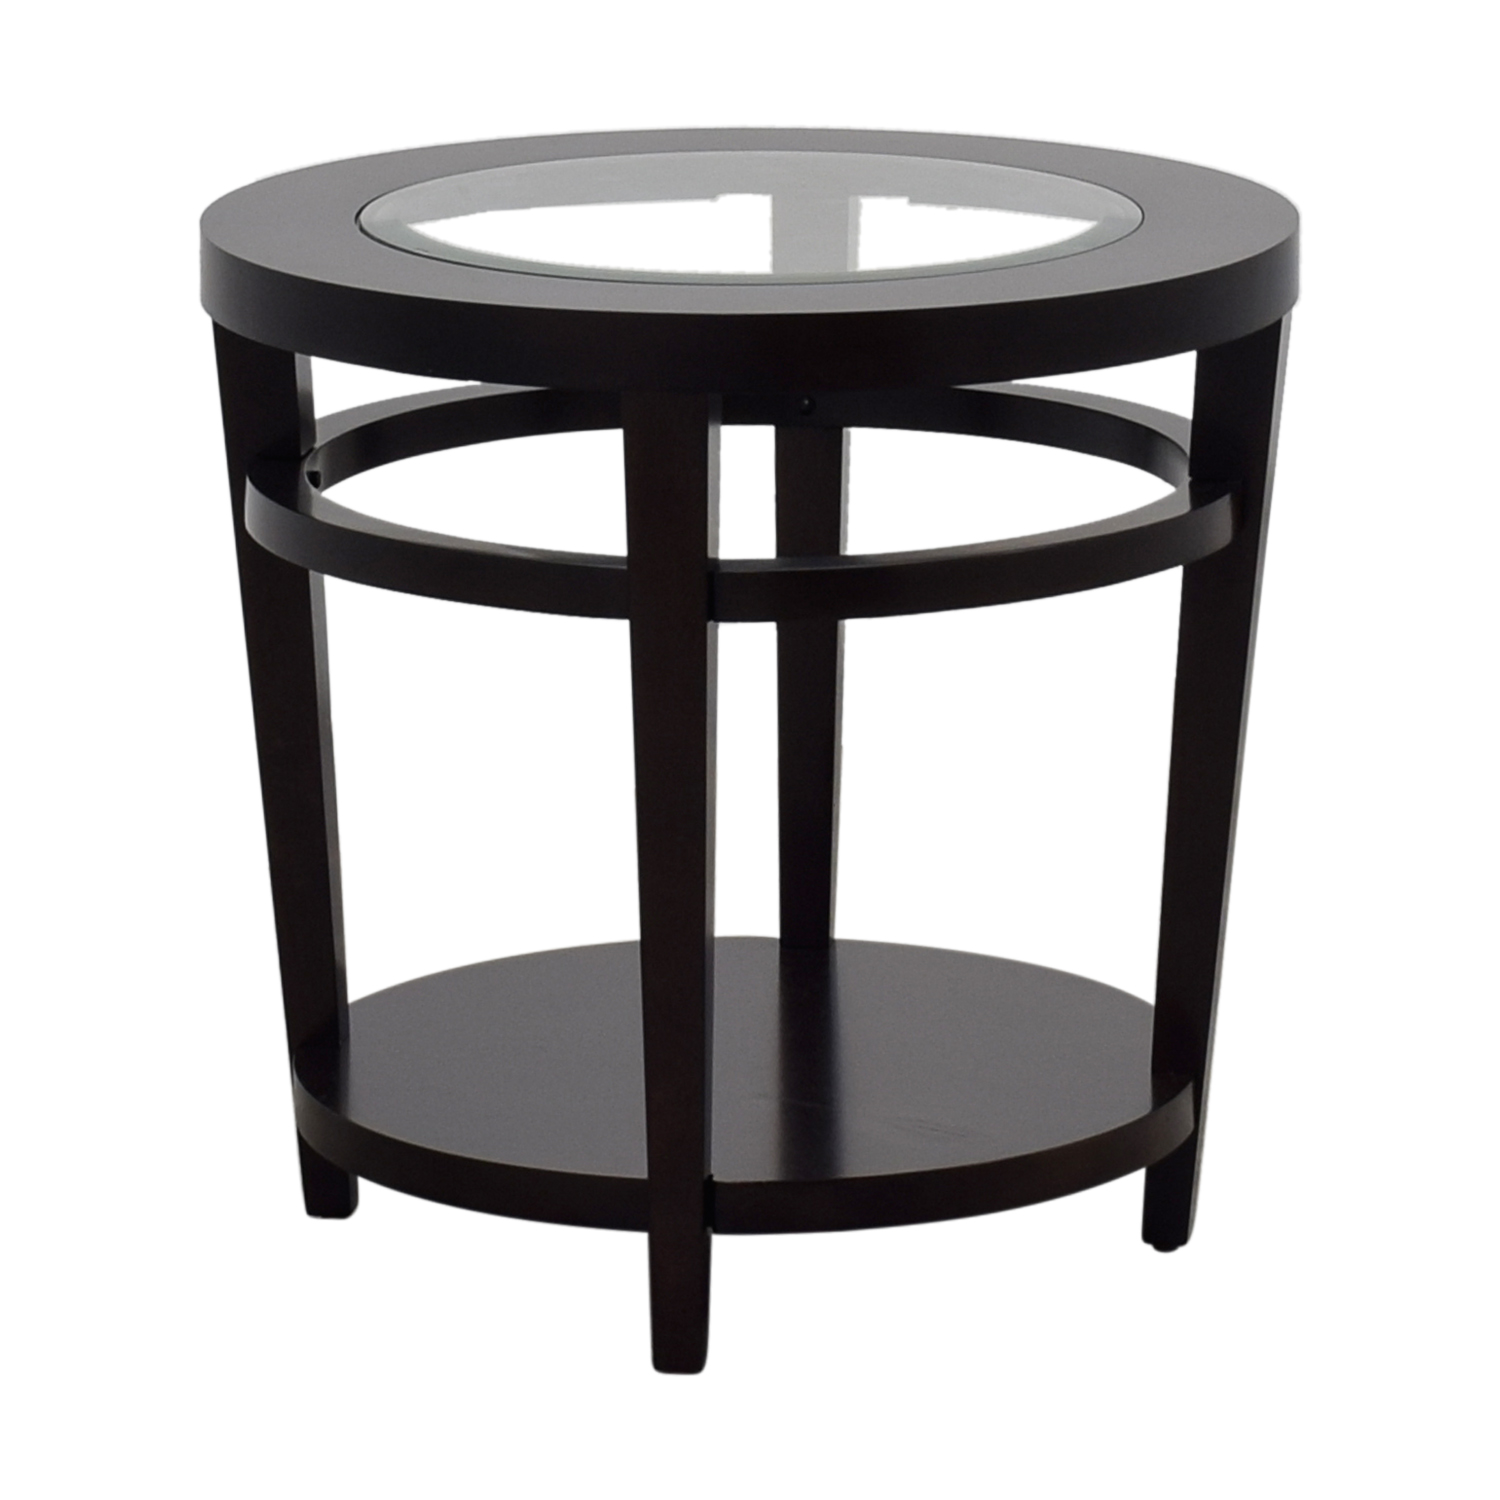 79 Off Macy S Macy S Avalon Round Wood And Glass Side Table Tables